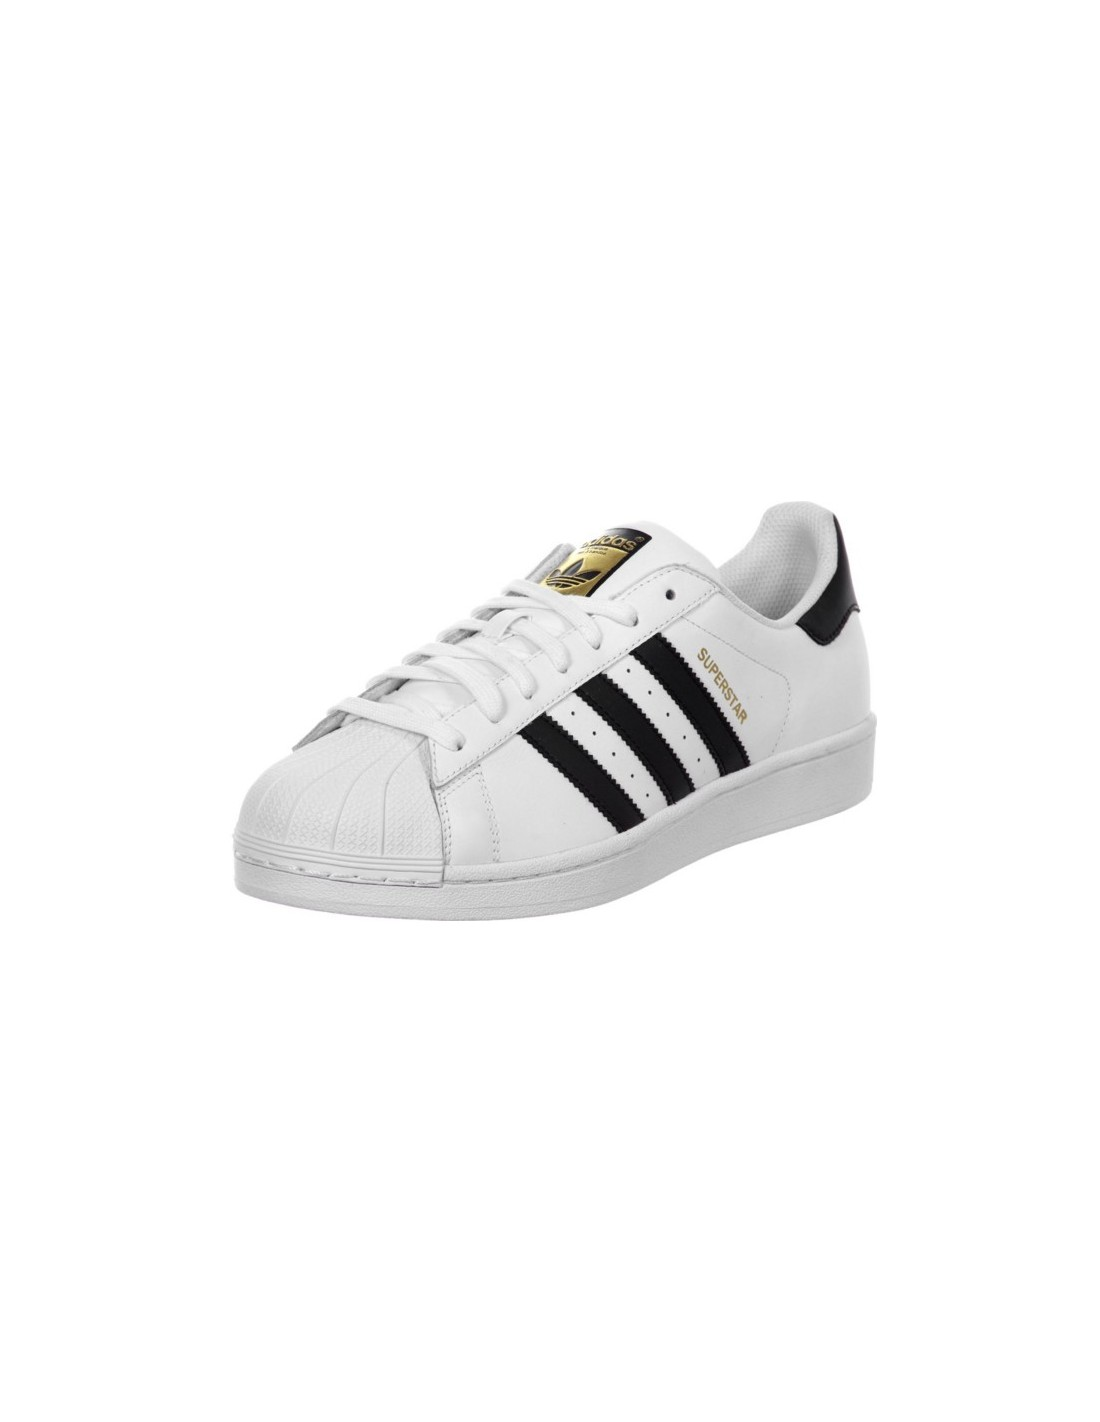 adidas superstar zalando junior